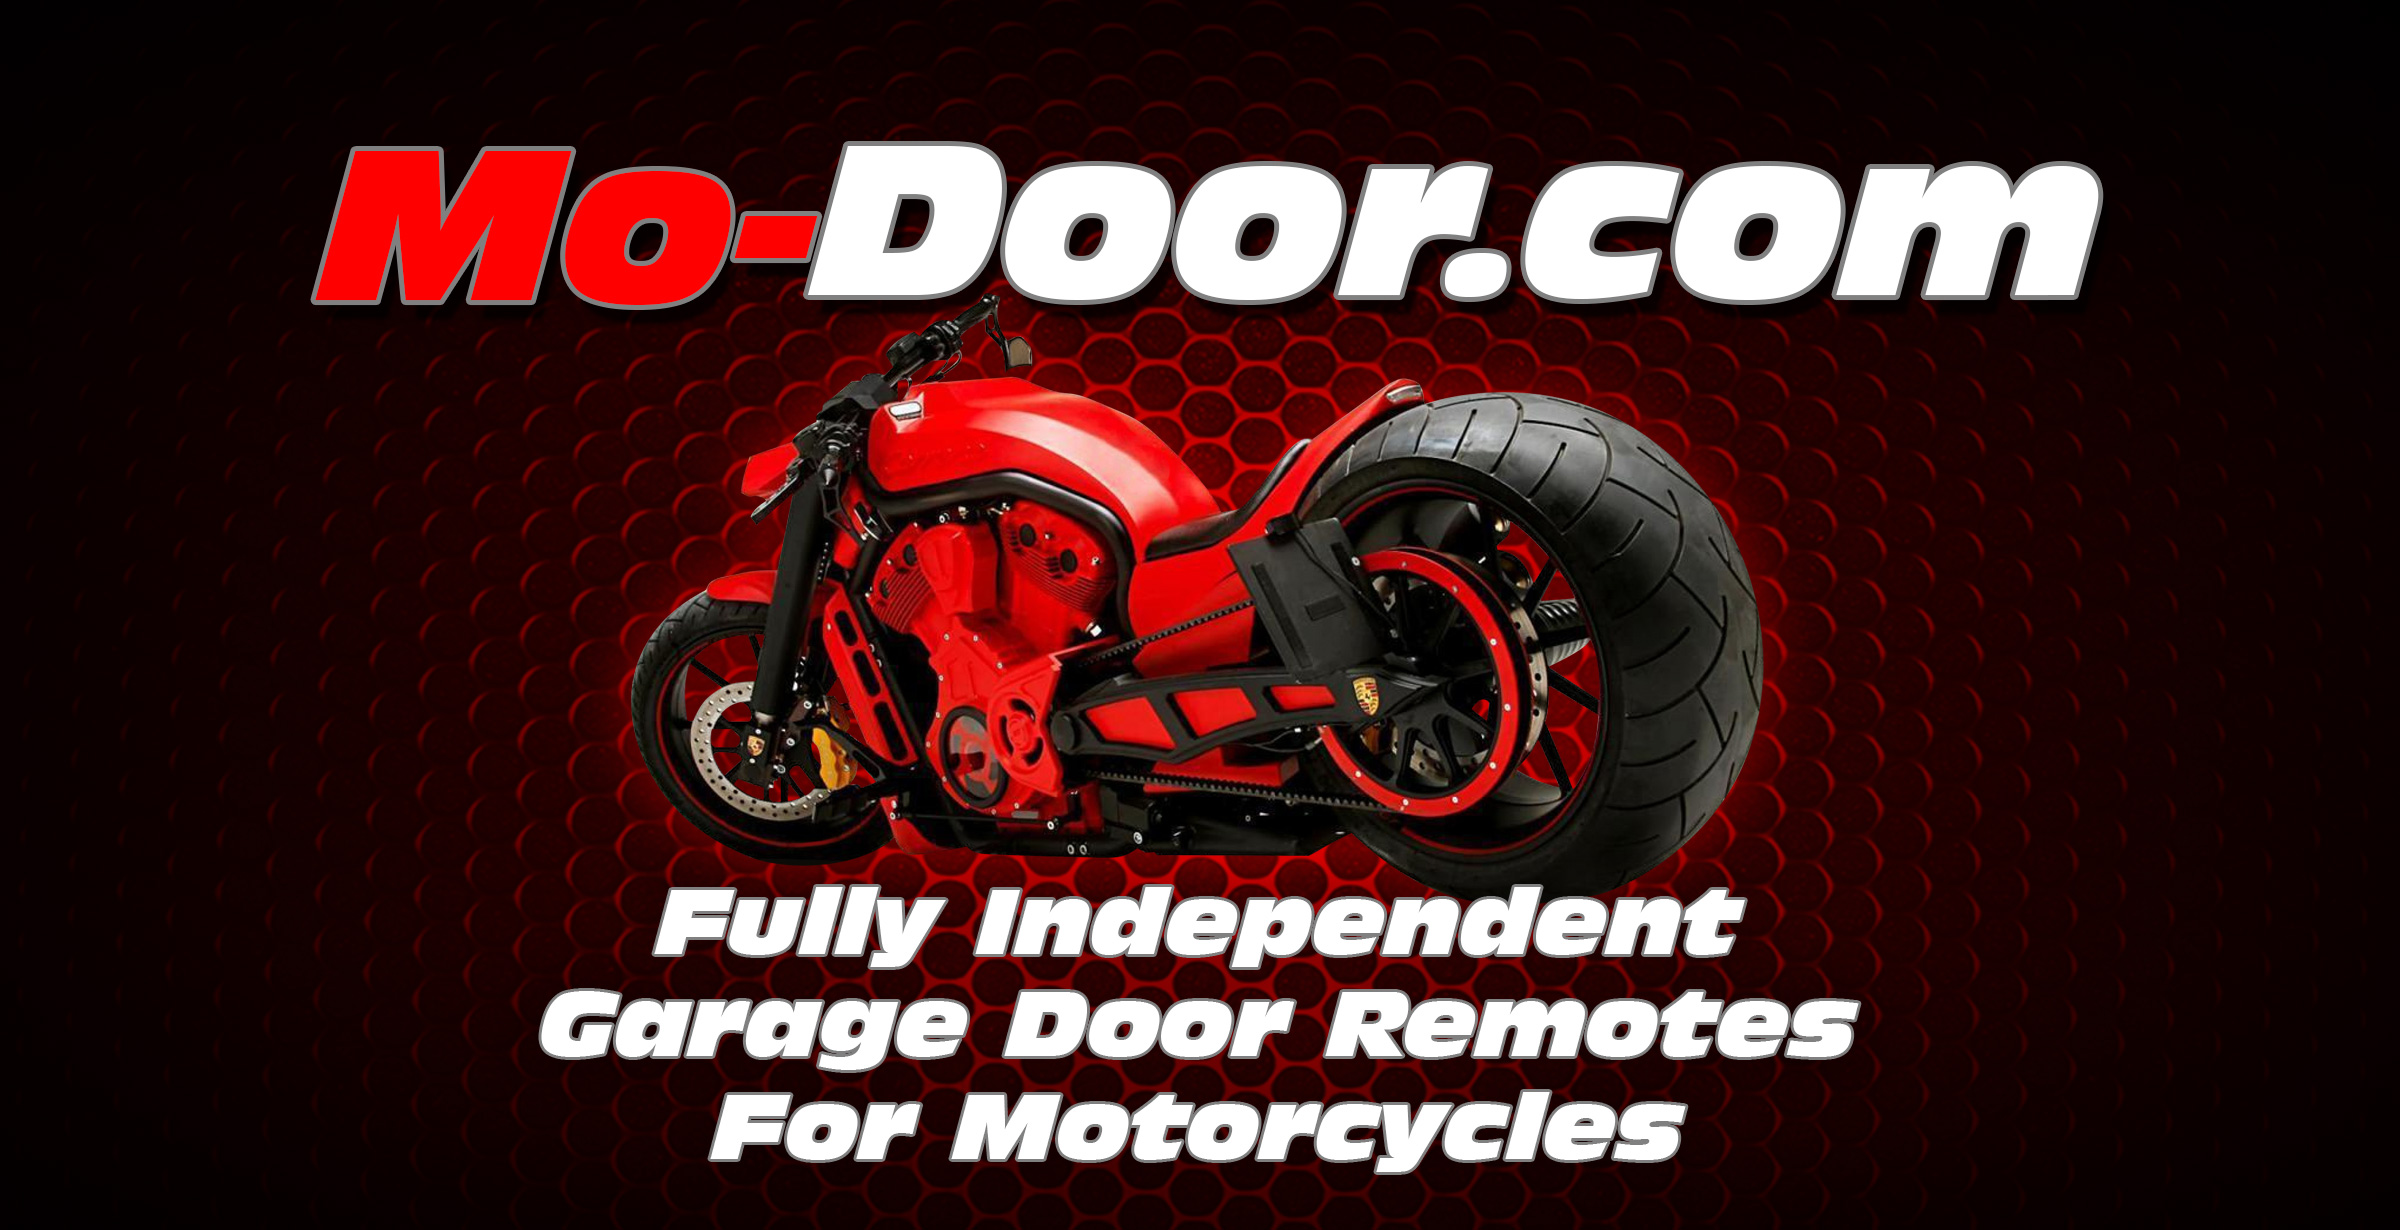 sc 1 th 161 & Mo-Door.com - Motorcycle garage door remotes